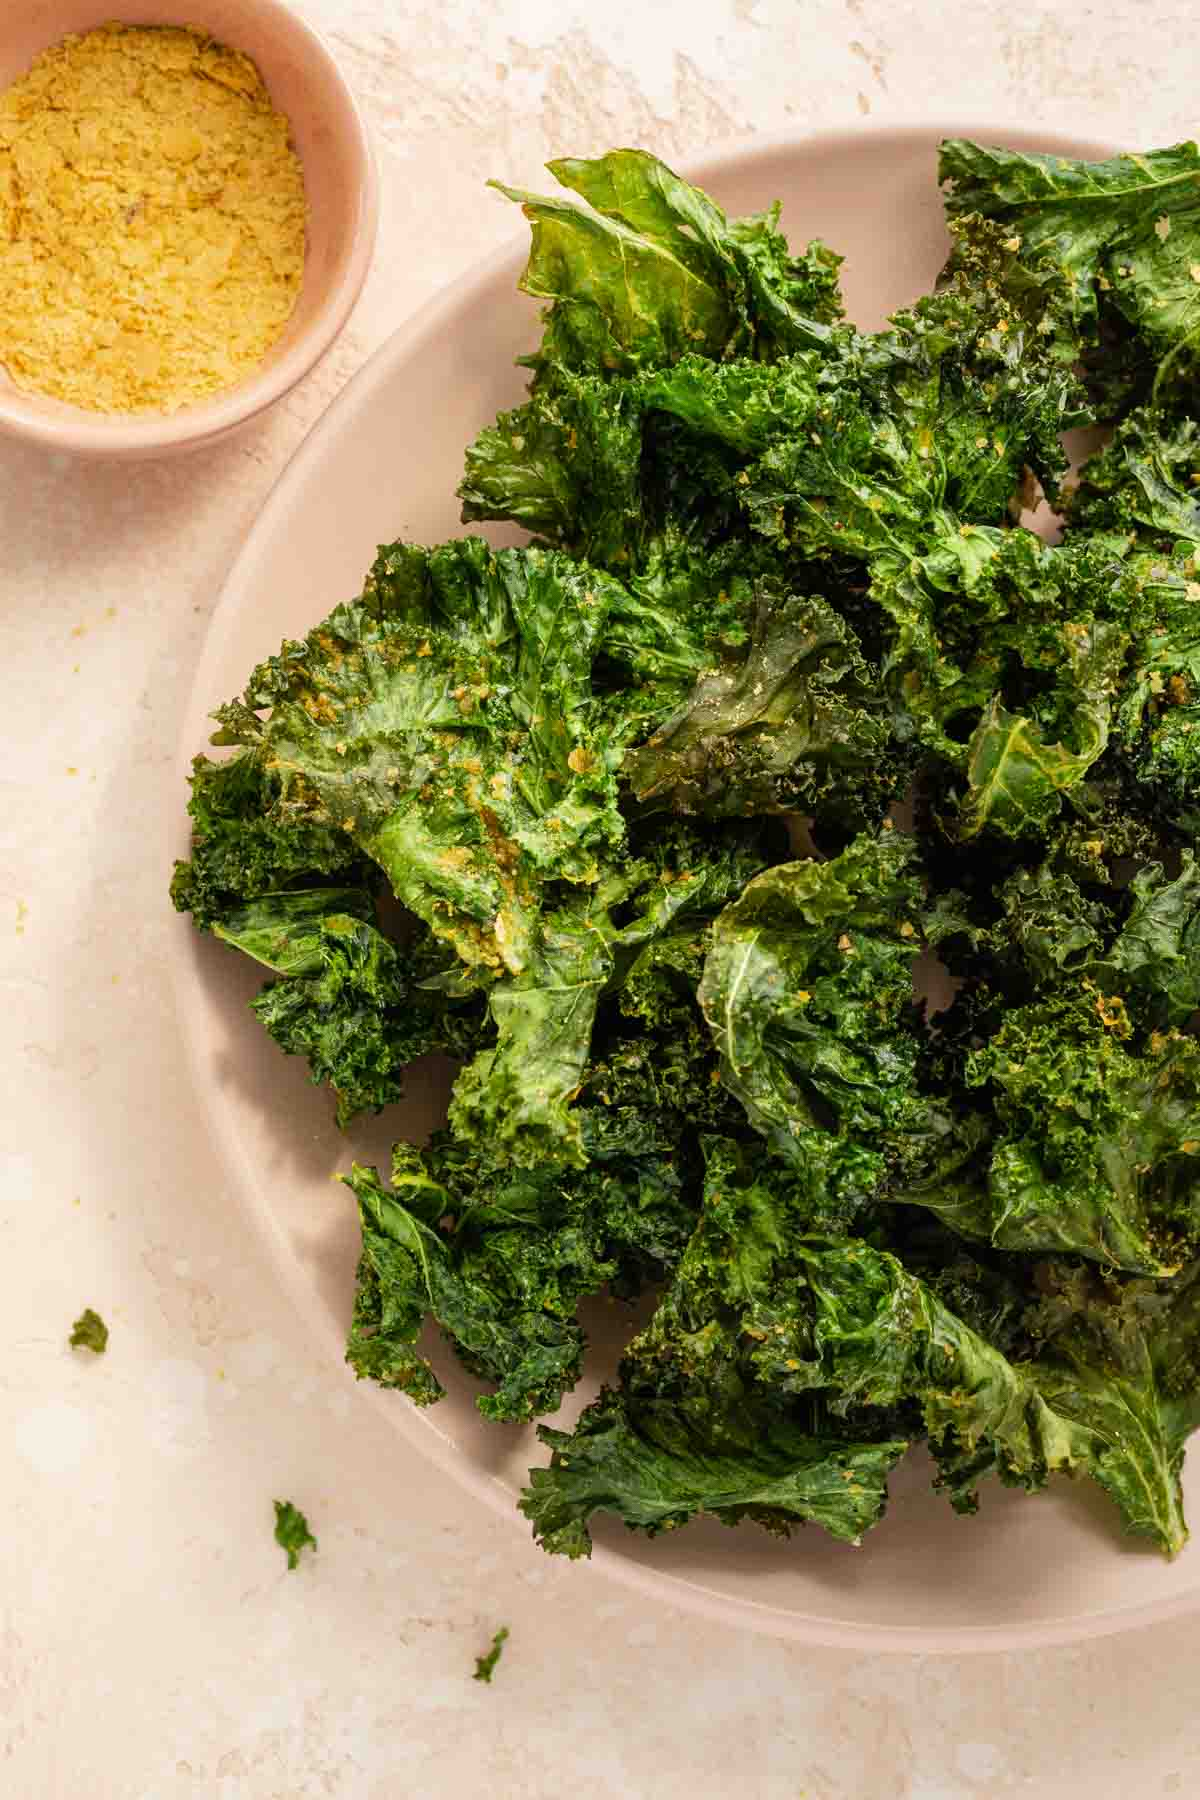 Close up view of kale chips arranged on a plate.